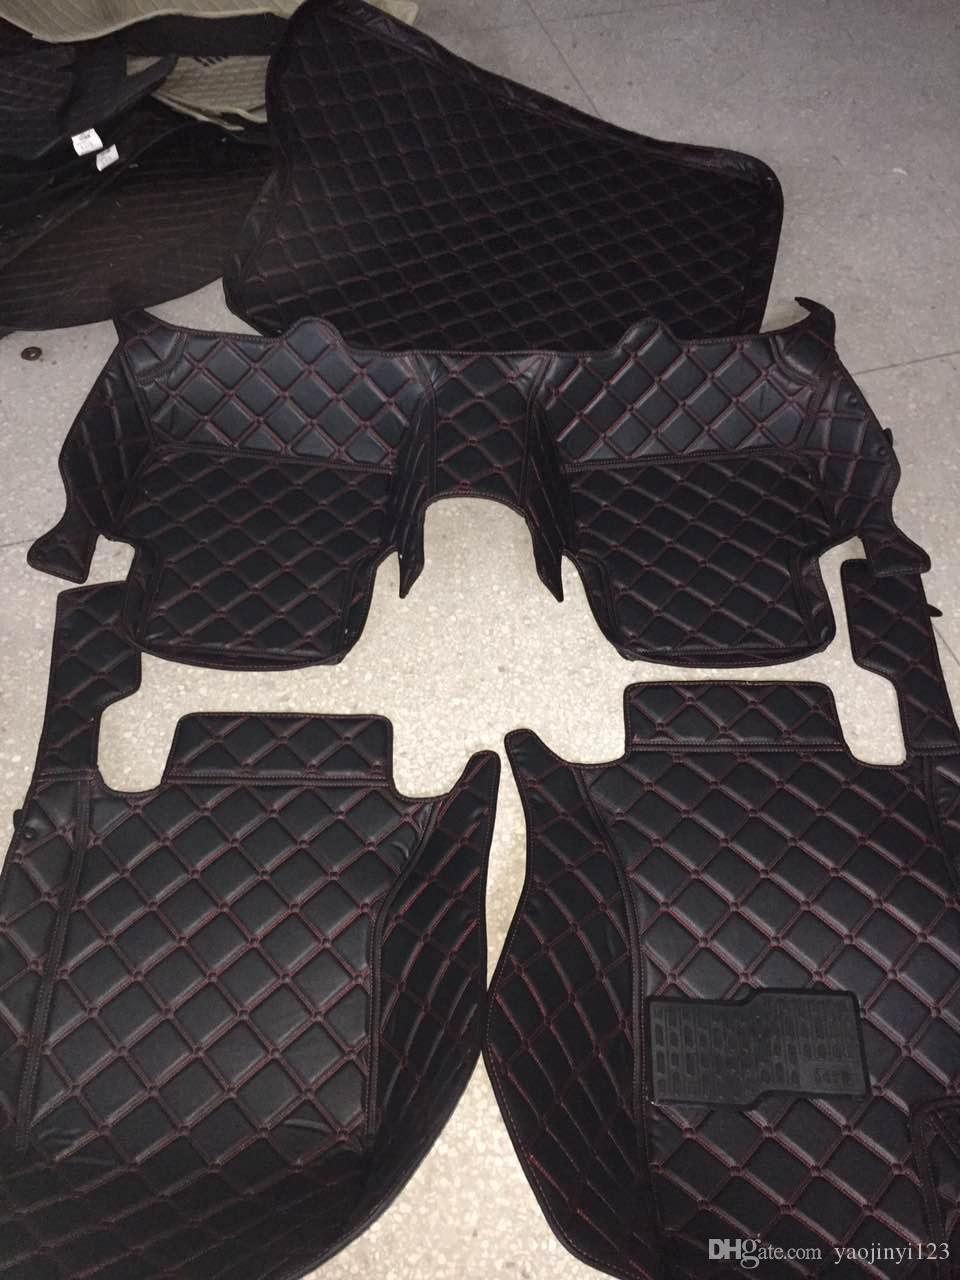 carpets g catalog swb floor benz mercedes used and for mats set class sale rubber